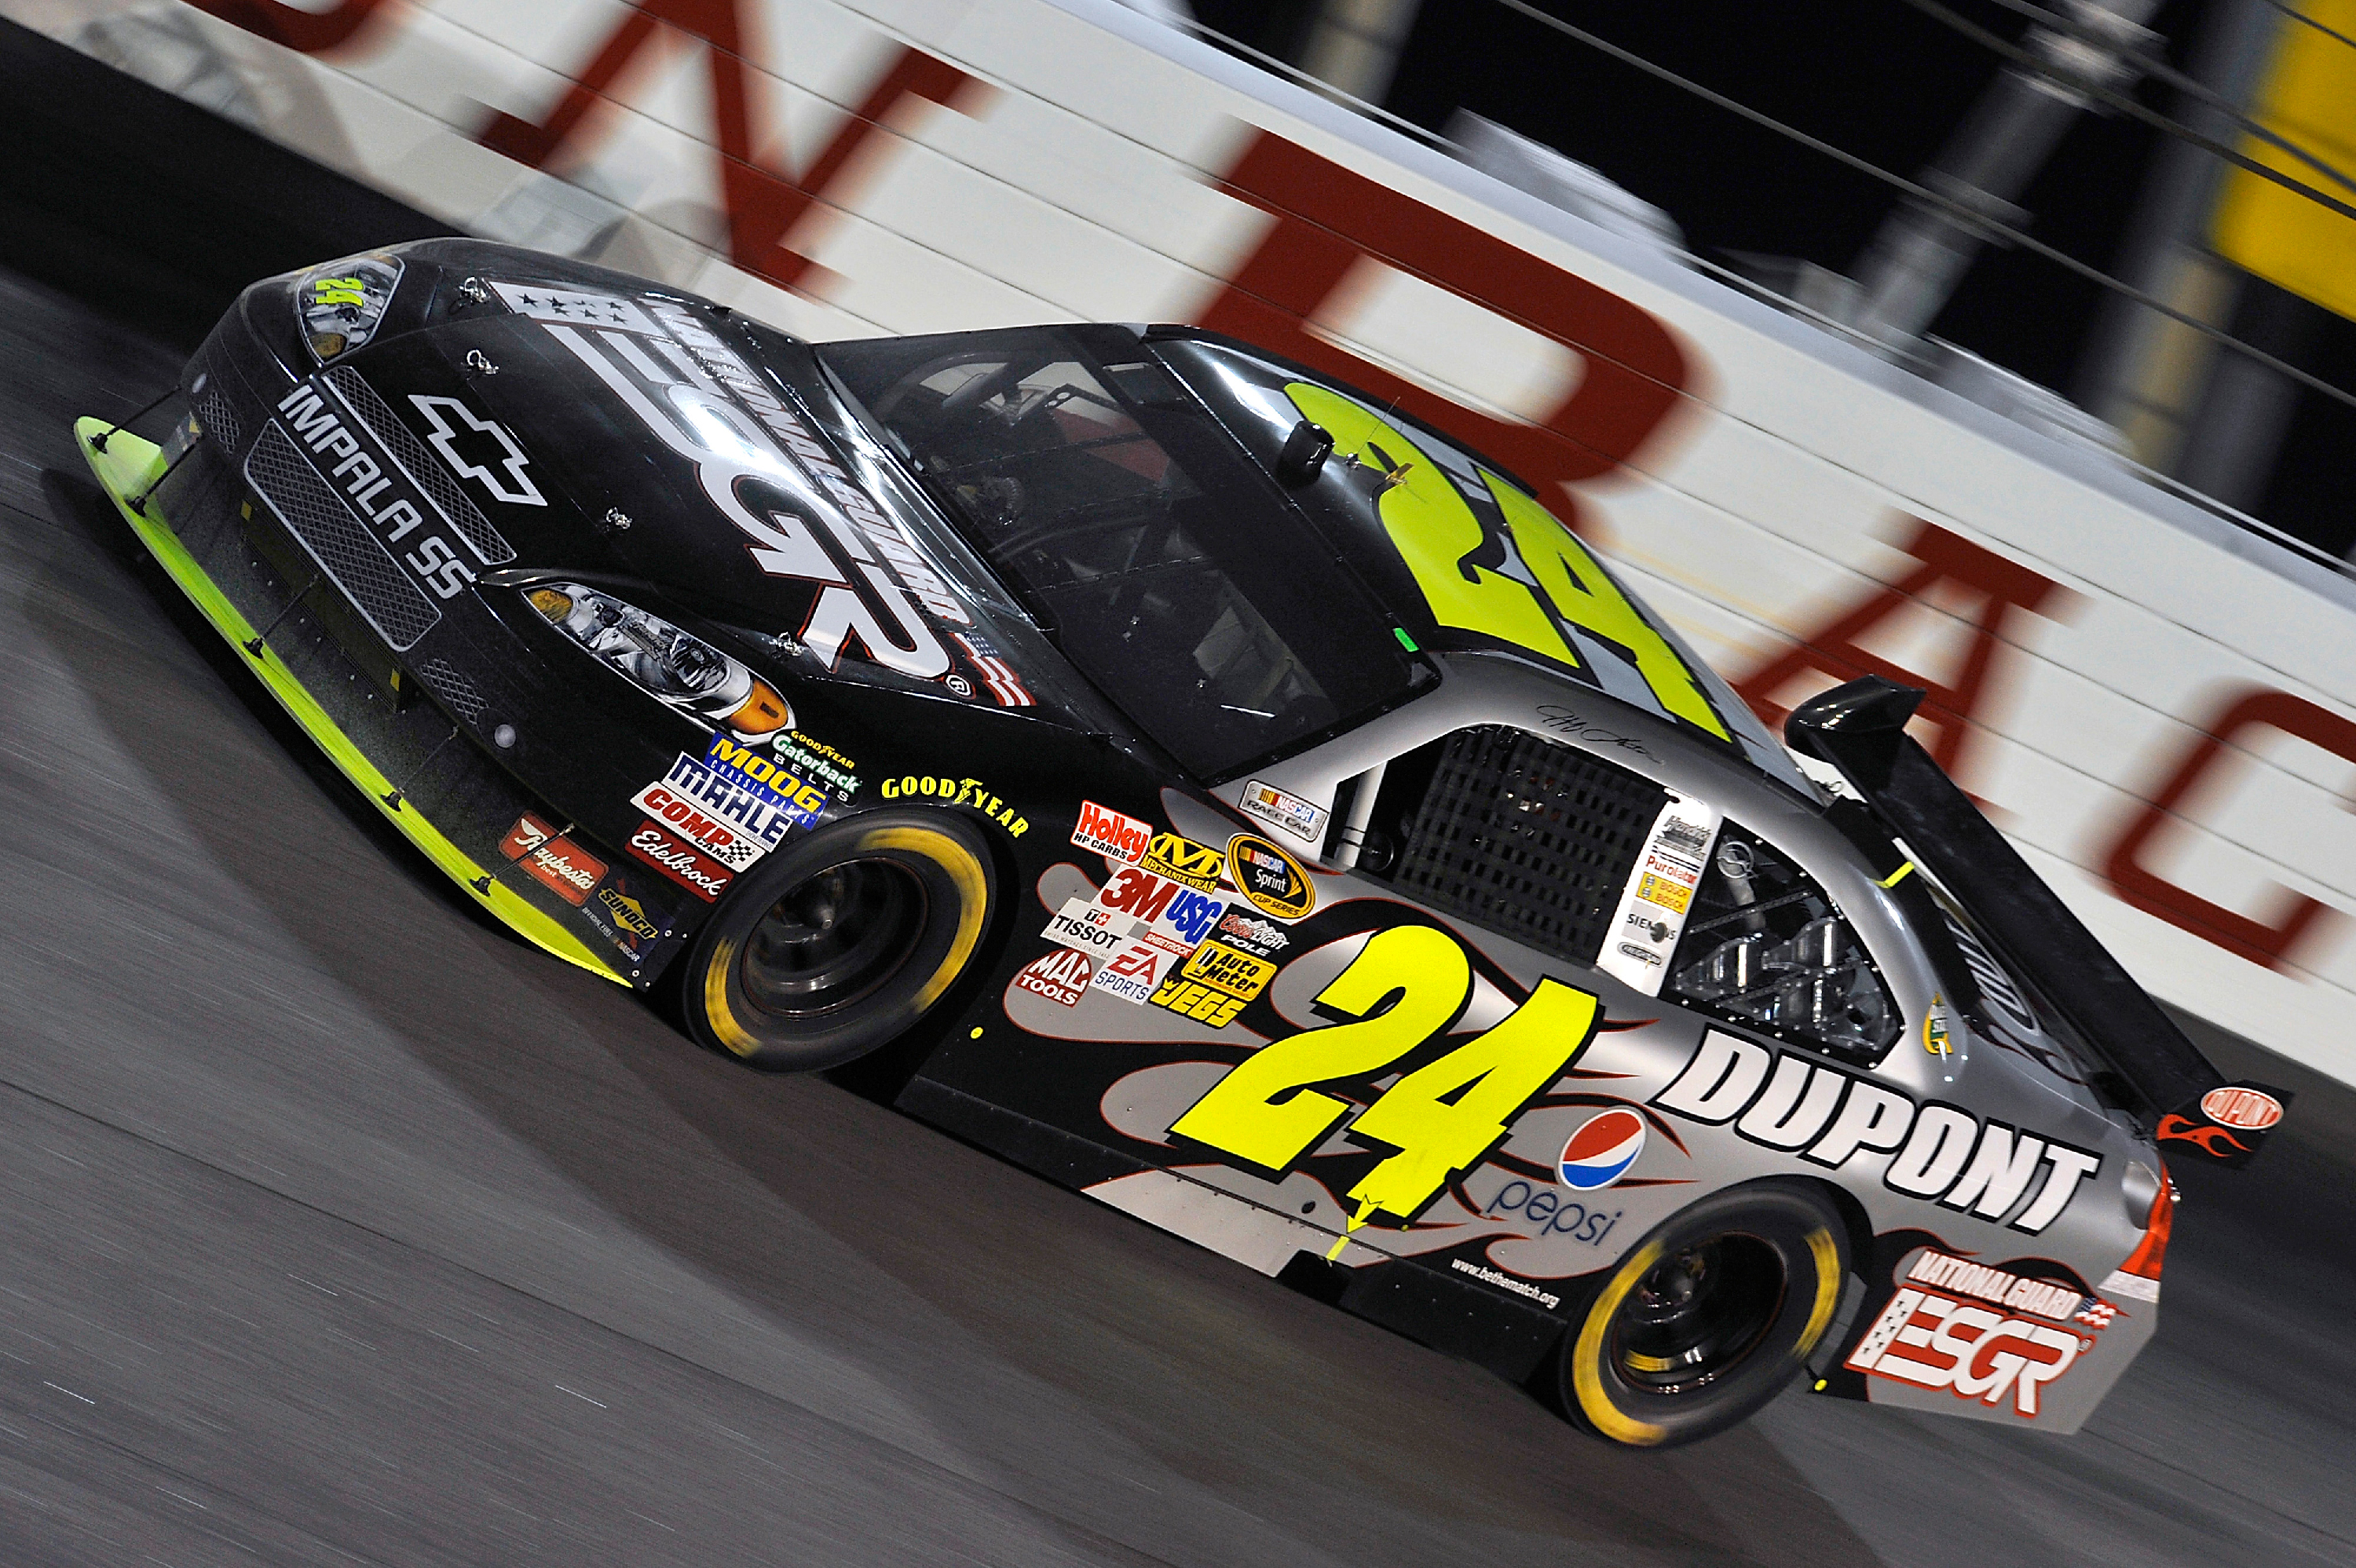 Jeff Gordon's No. 24 DuPont/National Guard ESGR Chevrolet rounds the track at Darlington Raceway in Darlington, SC May 9, 2009. Gordon overcame a one-lap deficit to finish fifth. (Photo Courtesy of Hendrick Motorsports)